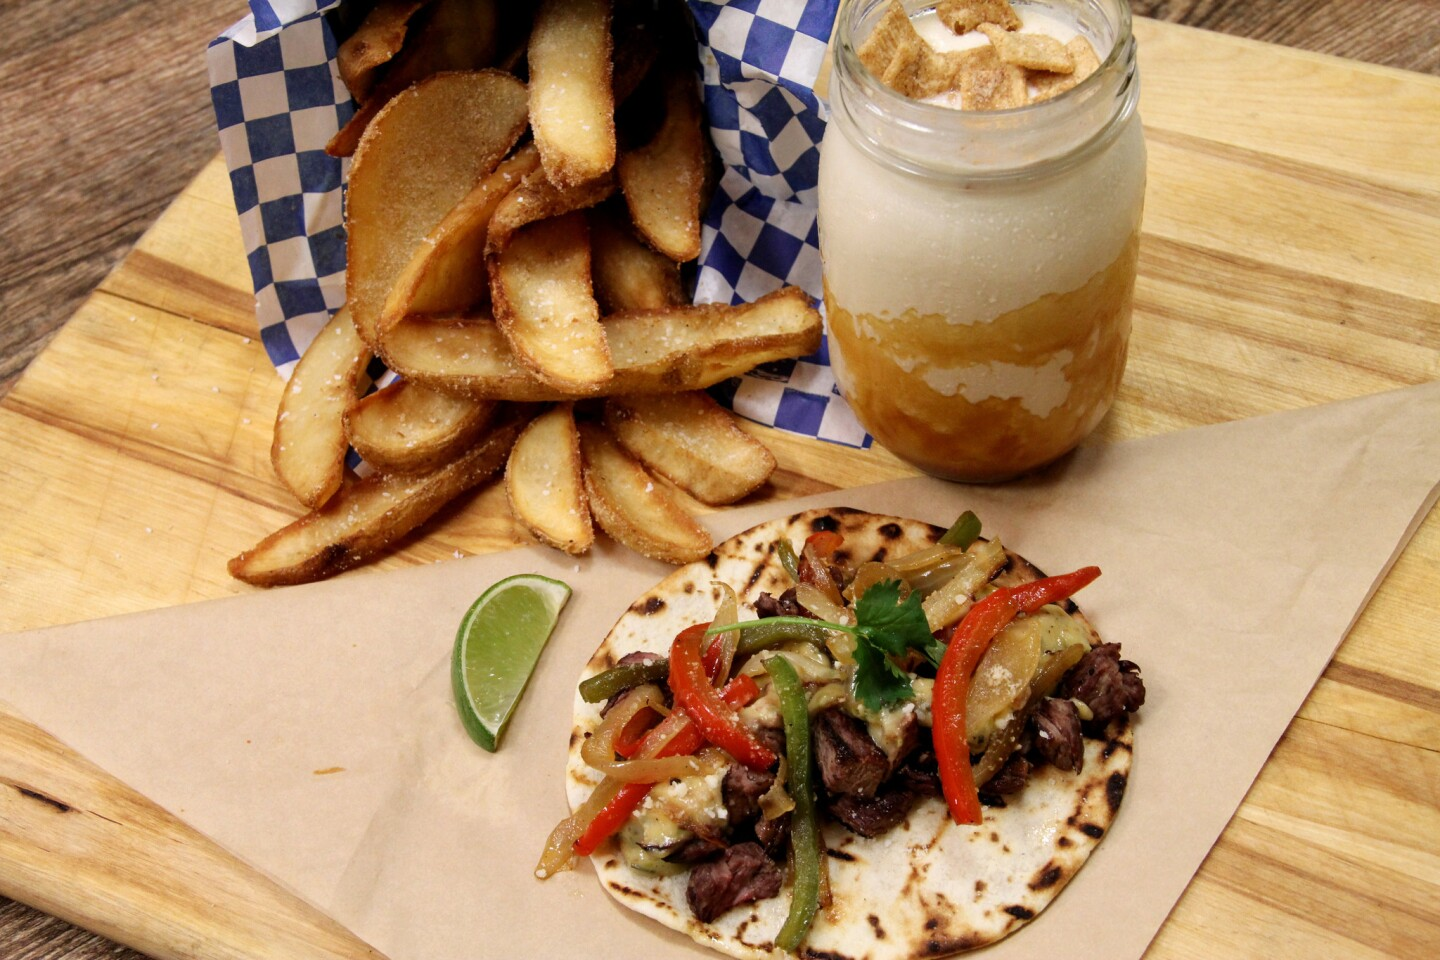 """Fries, the """"Brotherly Love"""" taco and a milkshake from U.S. Taco Co., opening in the next few months in Huntington Beach."""